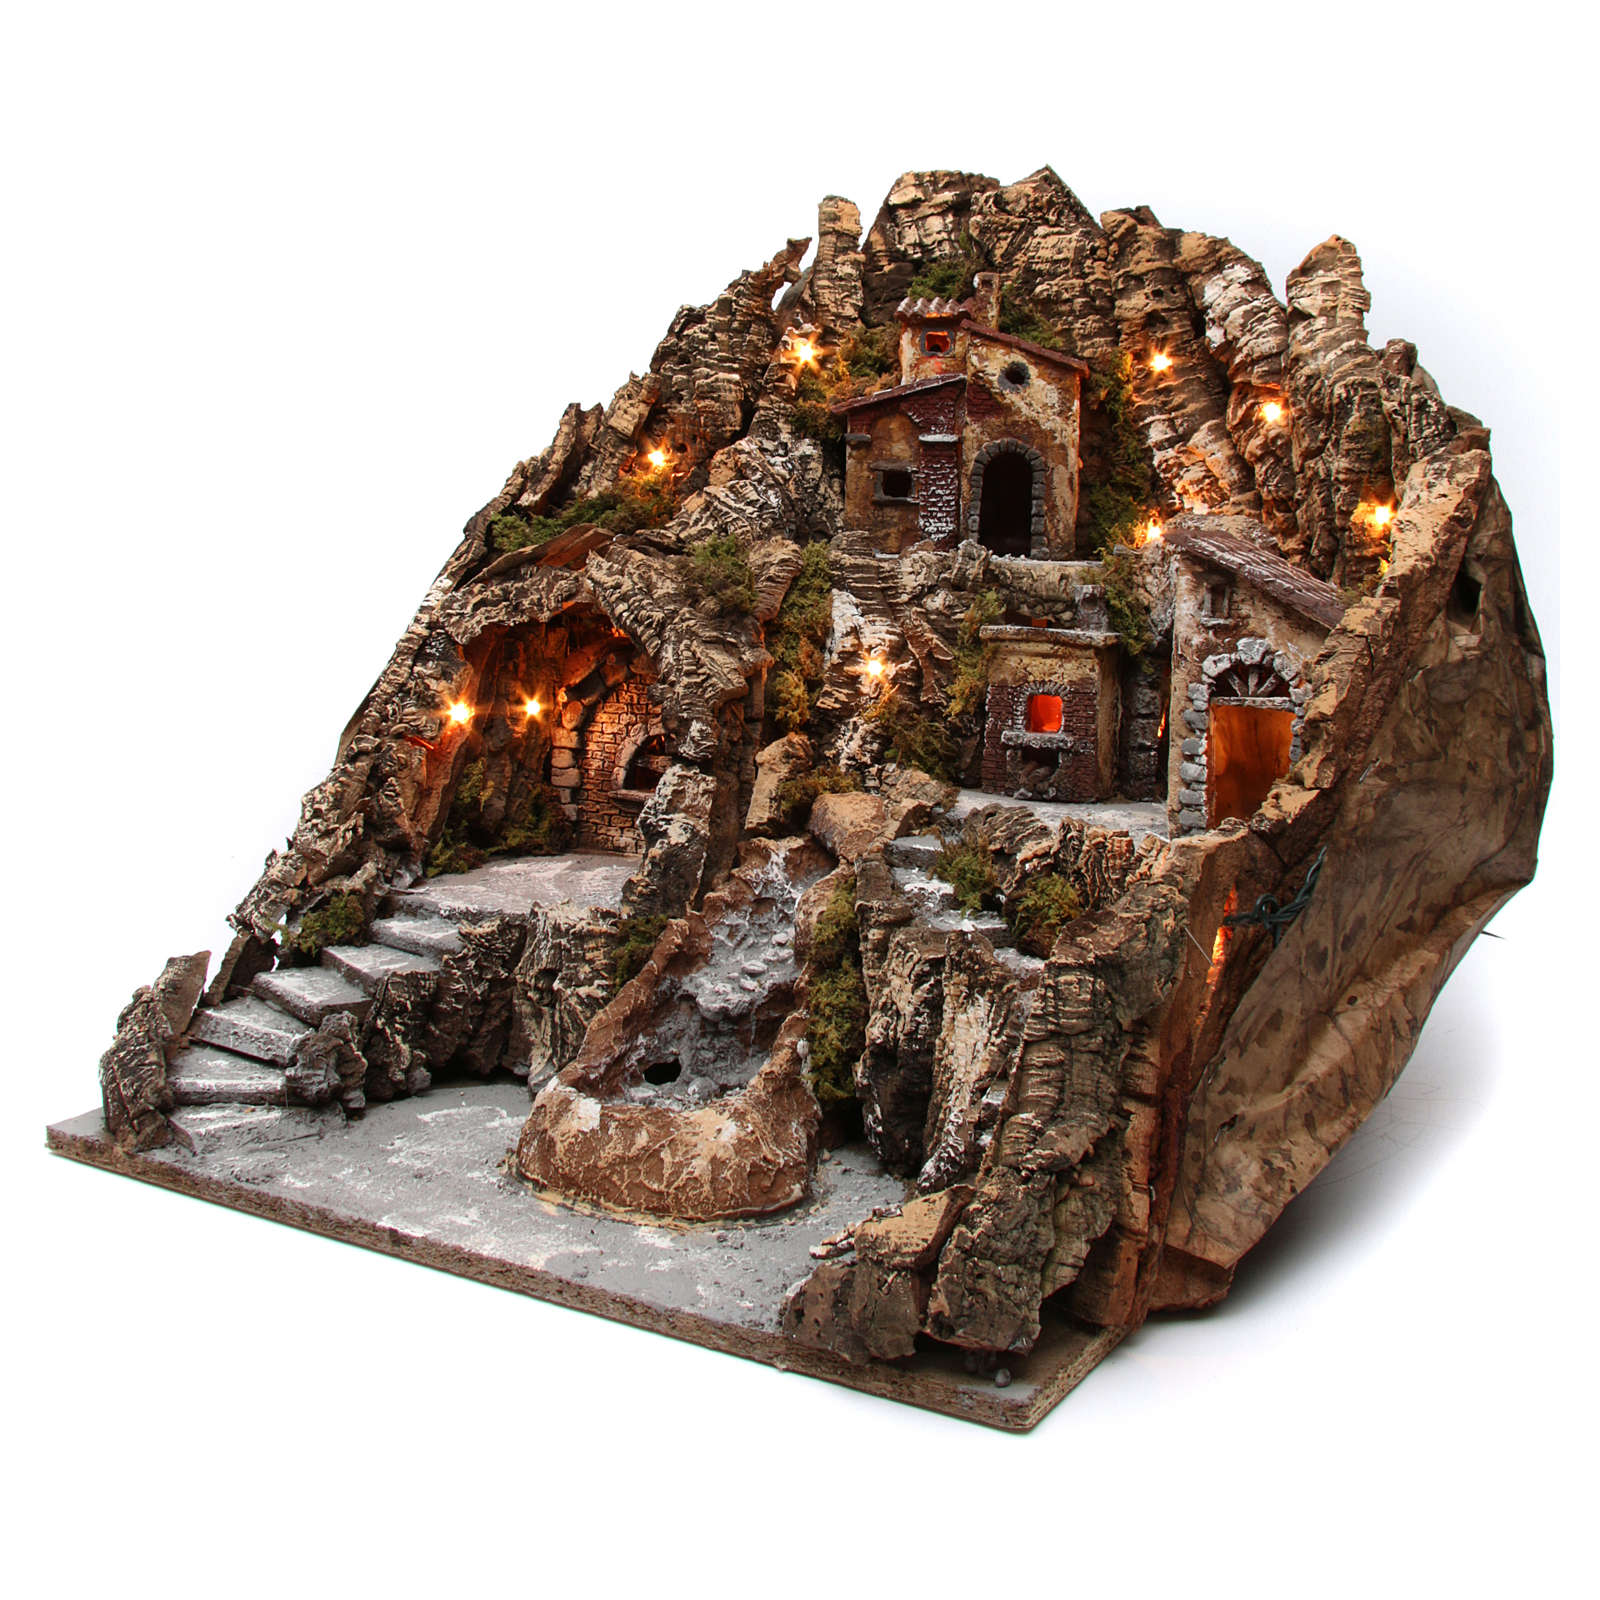 Neapolitan nativity scene village with oven and stream 55x60x60 cm 4